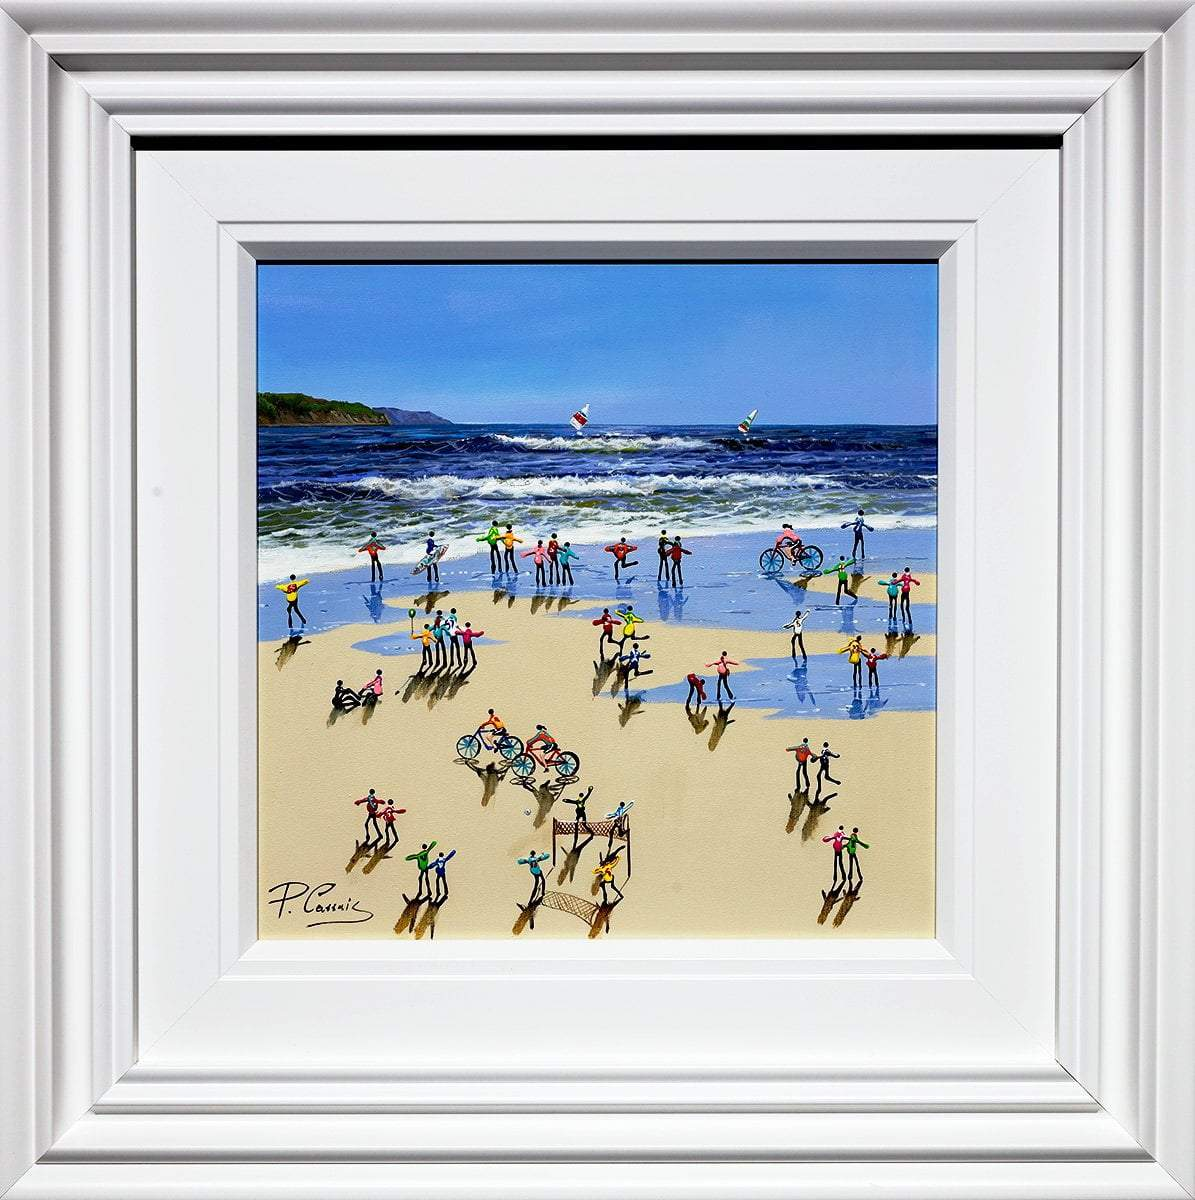 Summer Memories - Original Paola Cassais Framed